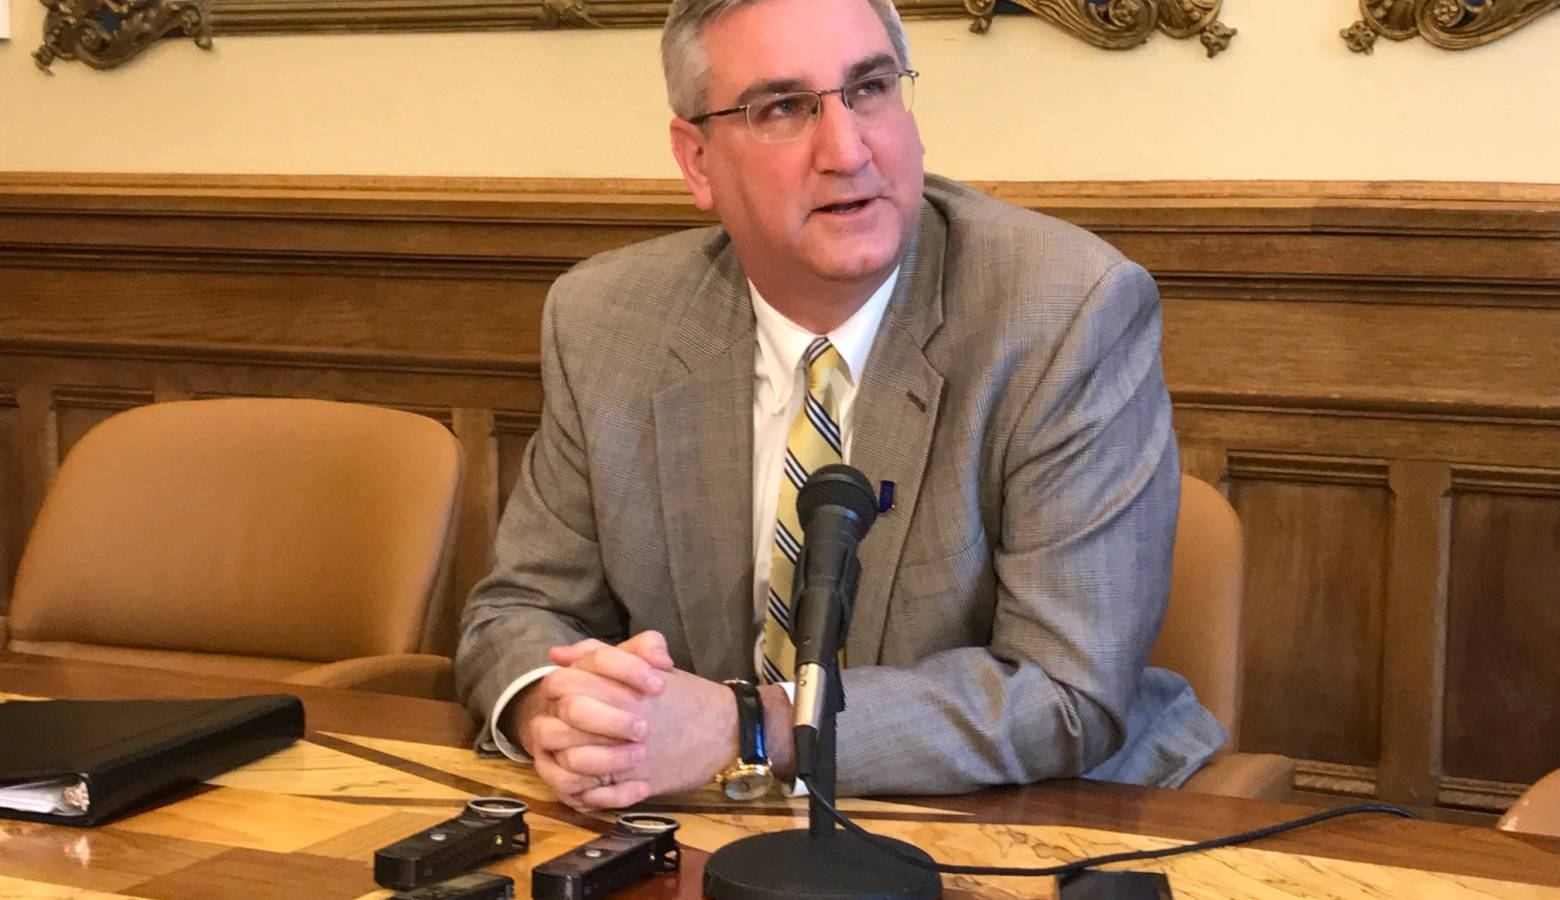 Gov. Eric Holcomb says the abortion reporting requirements bill does not restrict access to abortion. (Brandon Smith/IPB News)